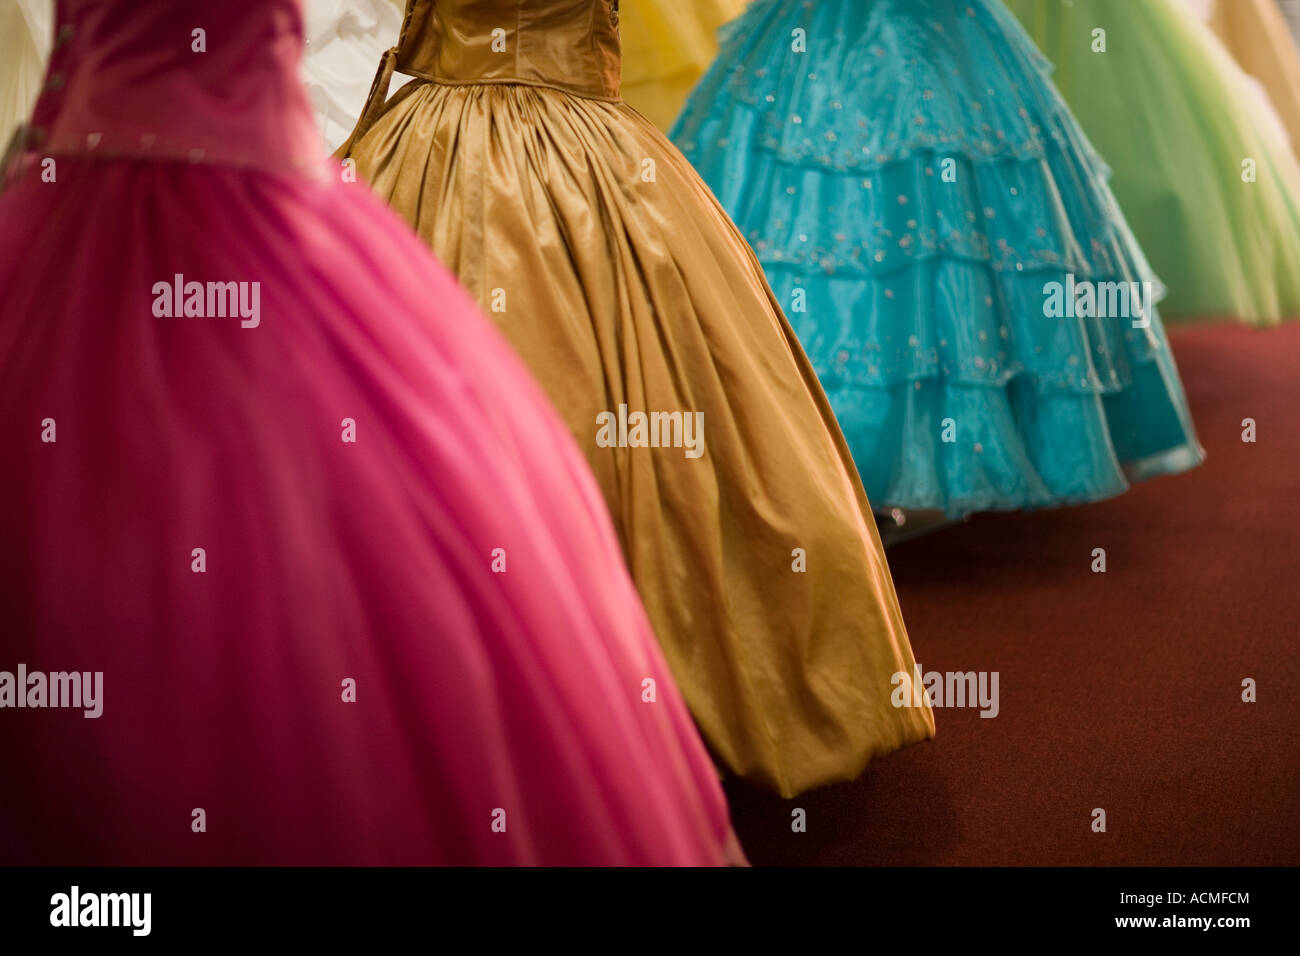 Gowns in downtown los angeles - Stock Photo Dresses For Weddings And Quinceanera Bridal Shop Broadway Downtown Los Angeles California United States Of America